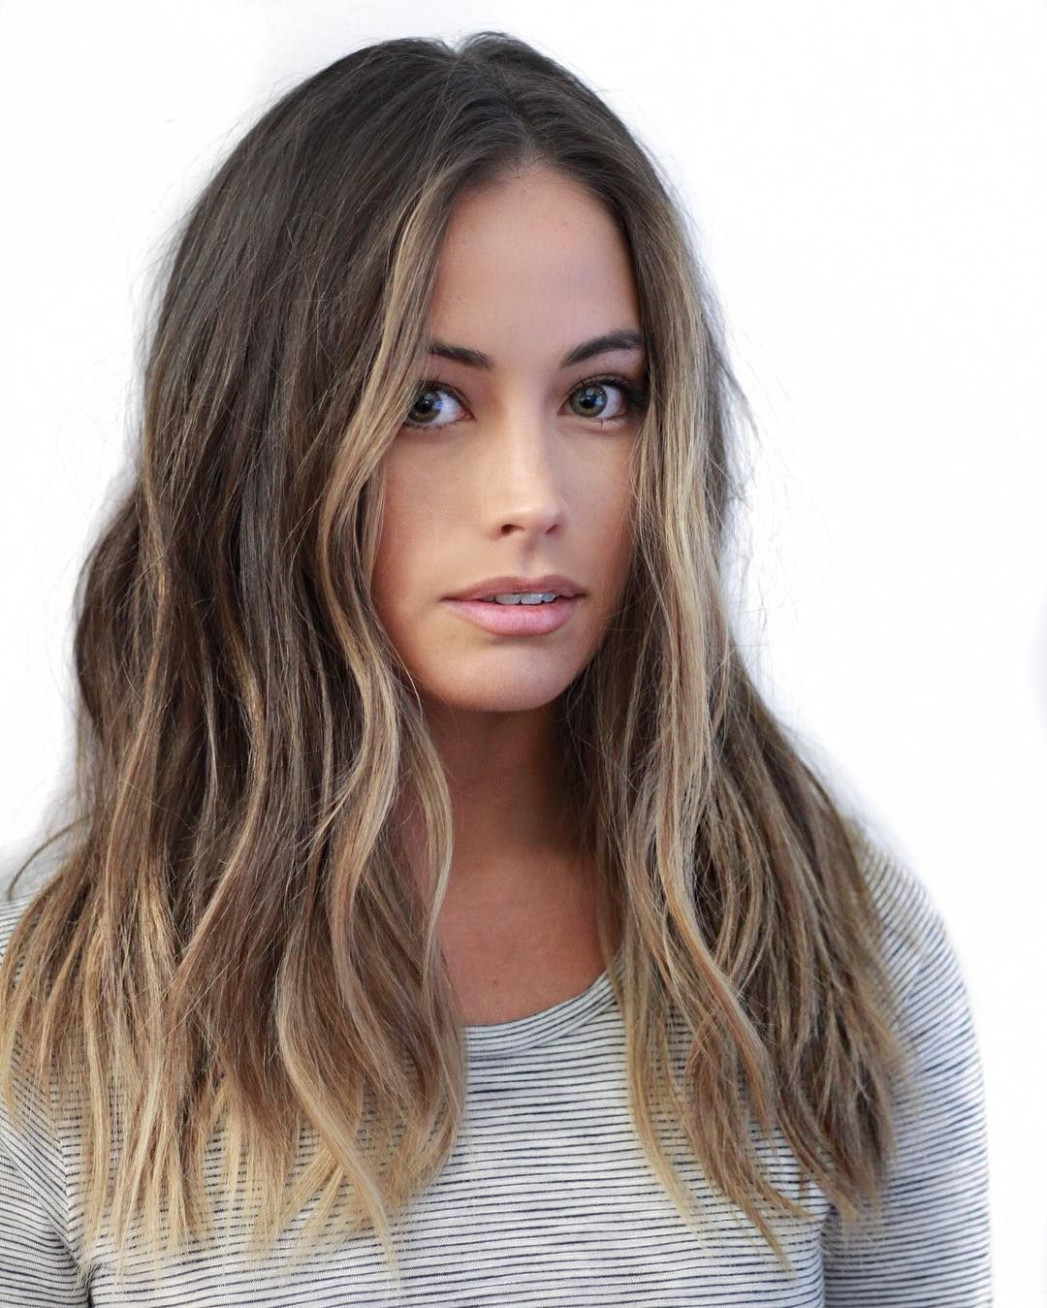 Cool 9 stylish hairstyle ideas for mid length hair and mid length